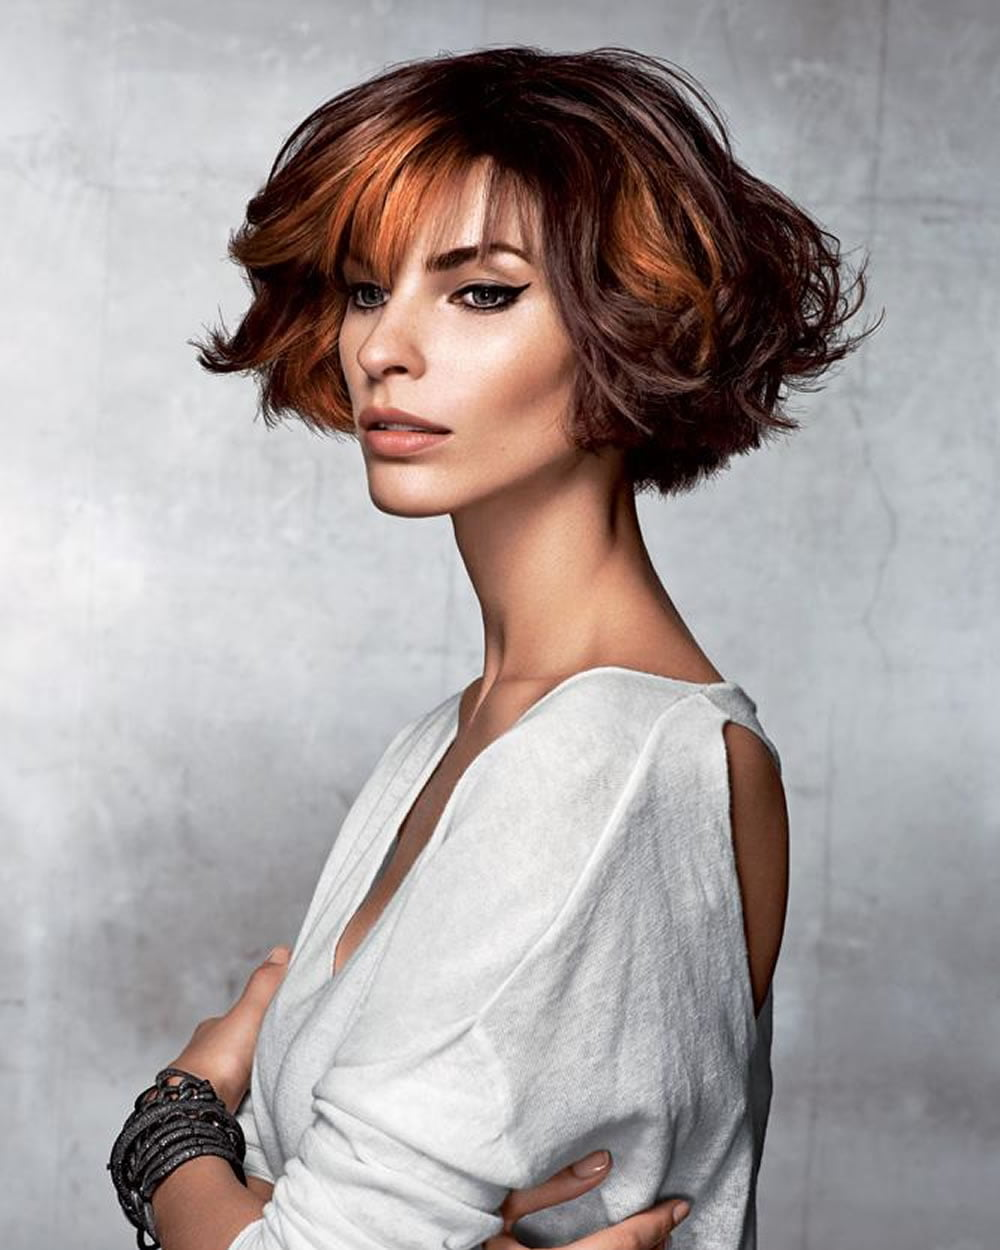 20 Latest Mixed 2018 Short Haircuts for Women  BobPixie Styles  Page 4  HAIRSTYLES